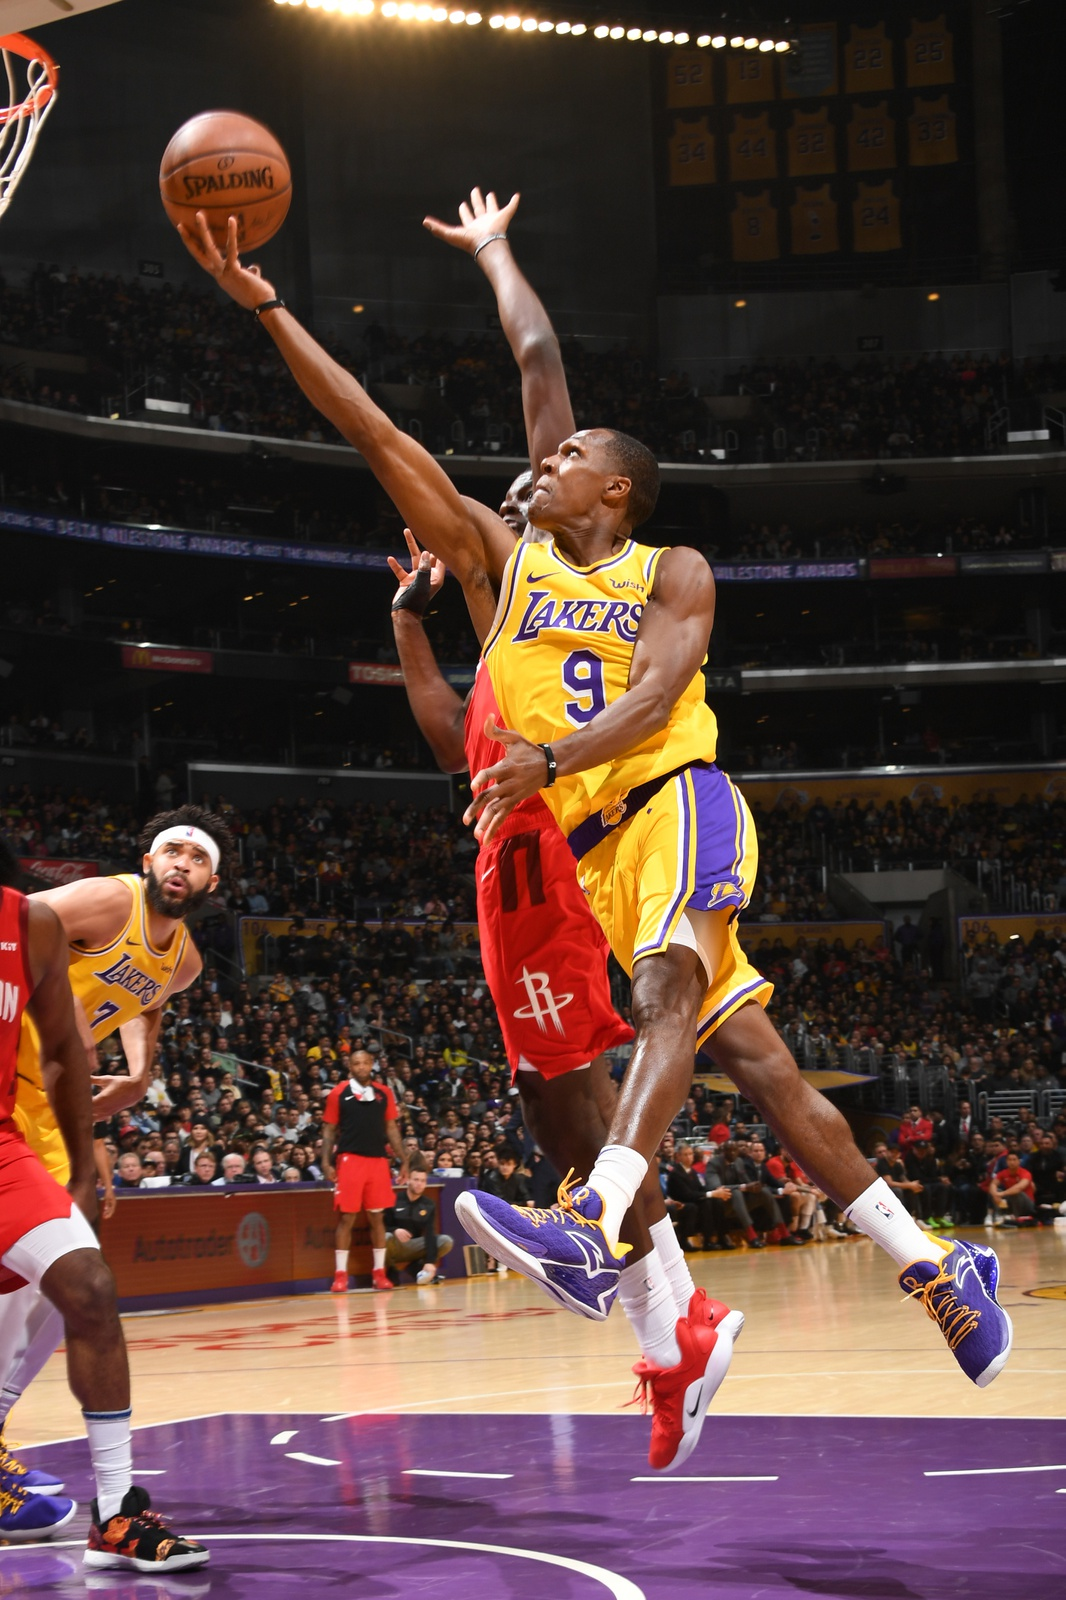 Rajon Rondo #9 of the Los Angeles Lakers shoots the ball against the Houston Rockets on February 21, 2019 at STAPLES Center in Los Angeles, California.